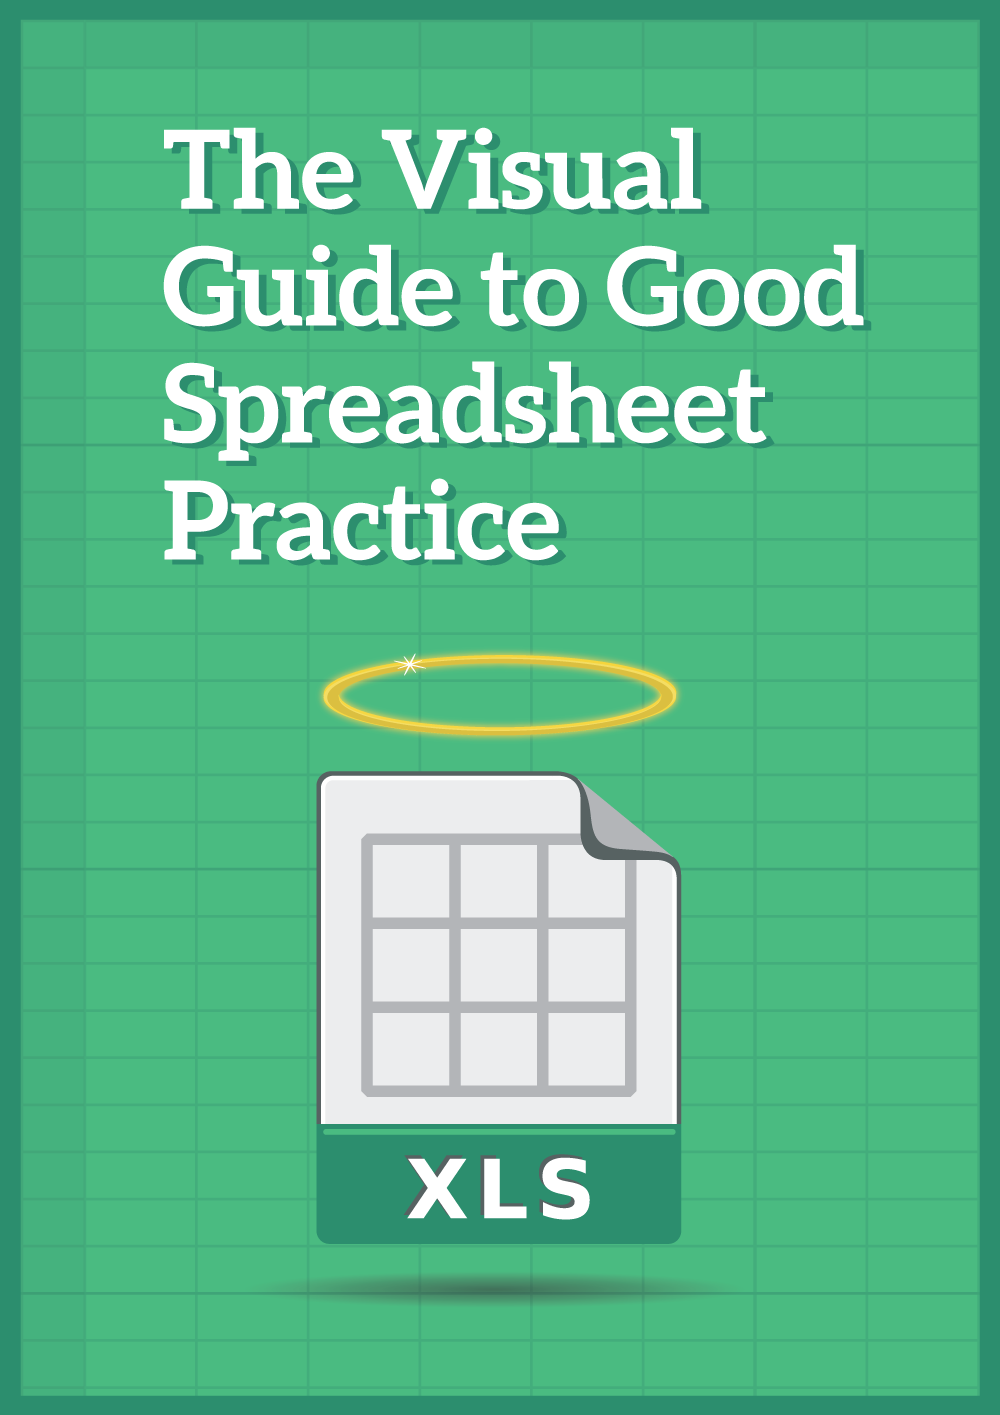 The Visual Guide to Good Spreadsheet Practice